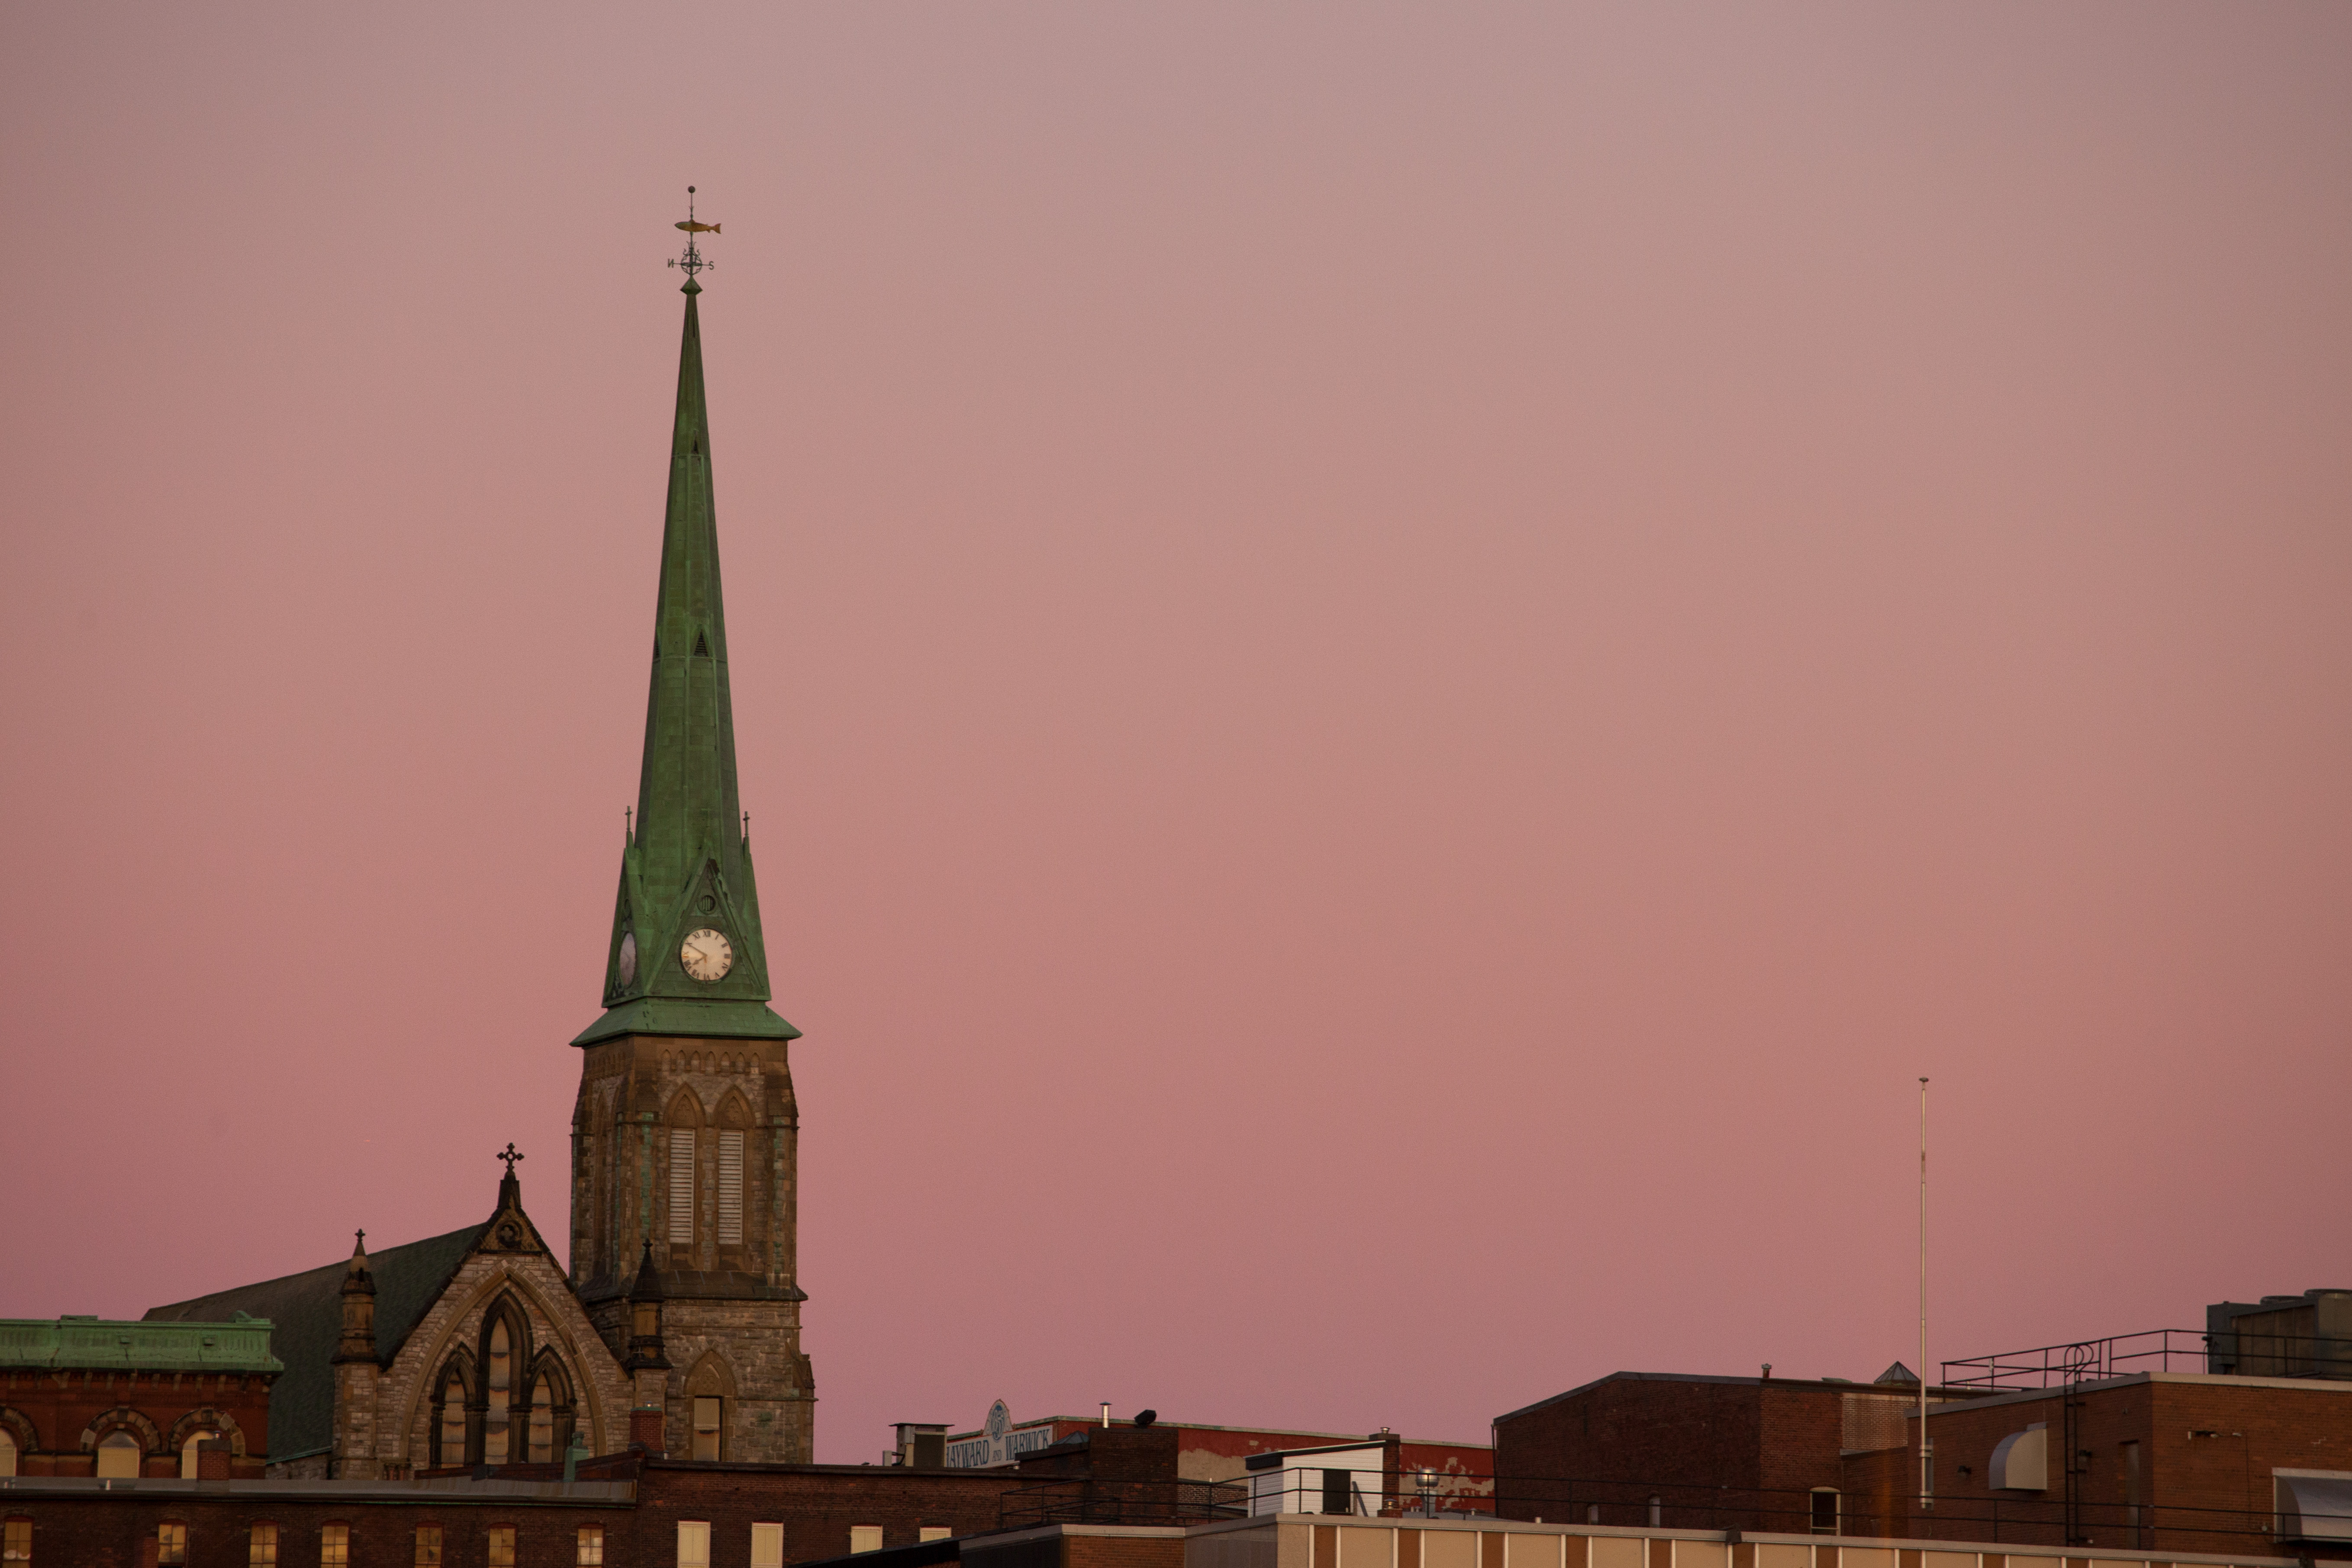 A photograph depicting Church Steeple Wide